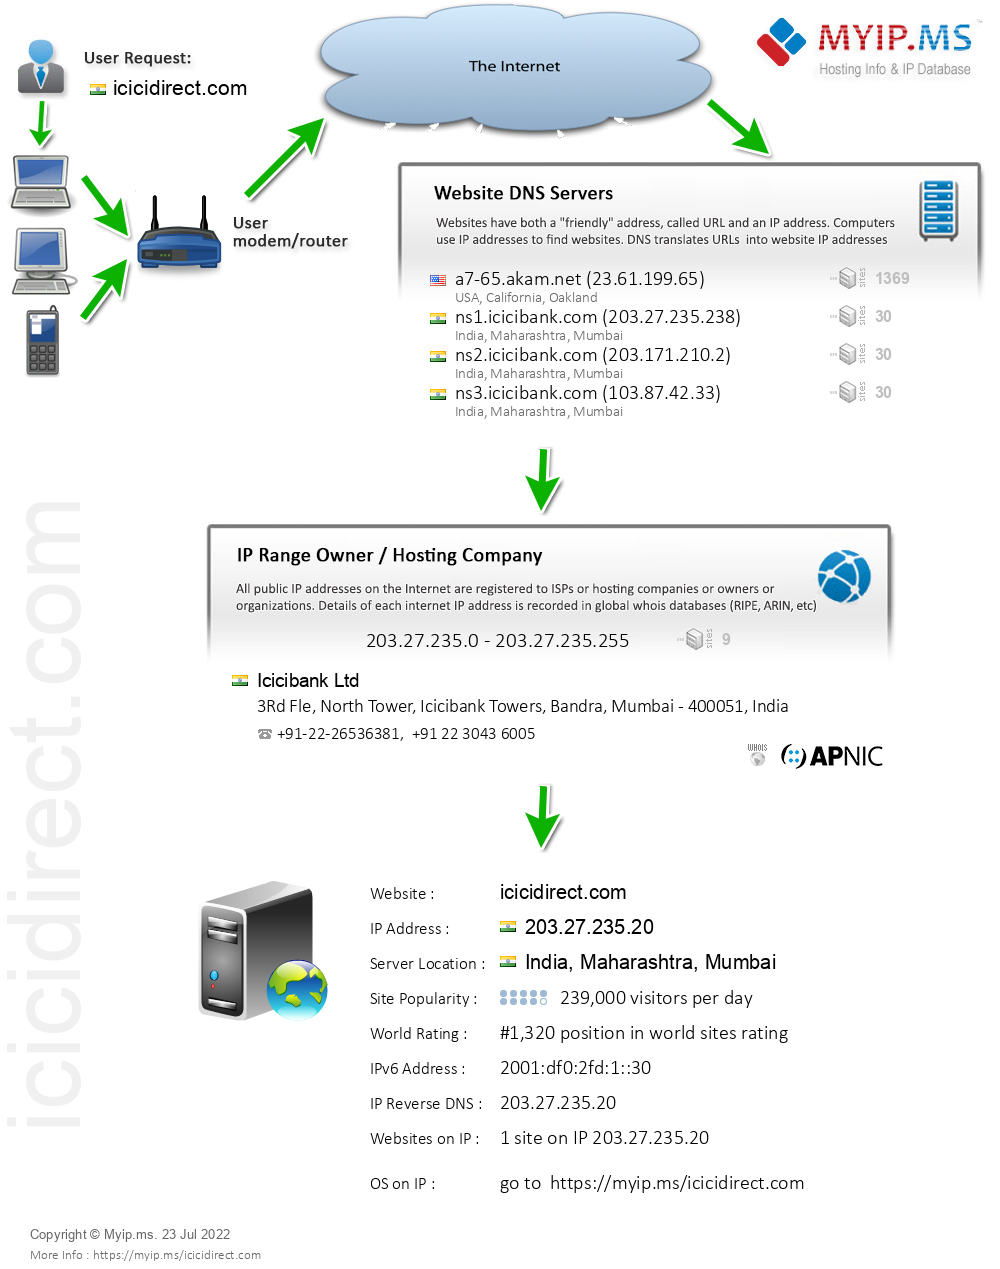 Icicidirect.com - Website Hosting Visual IP Diagram